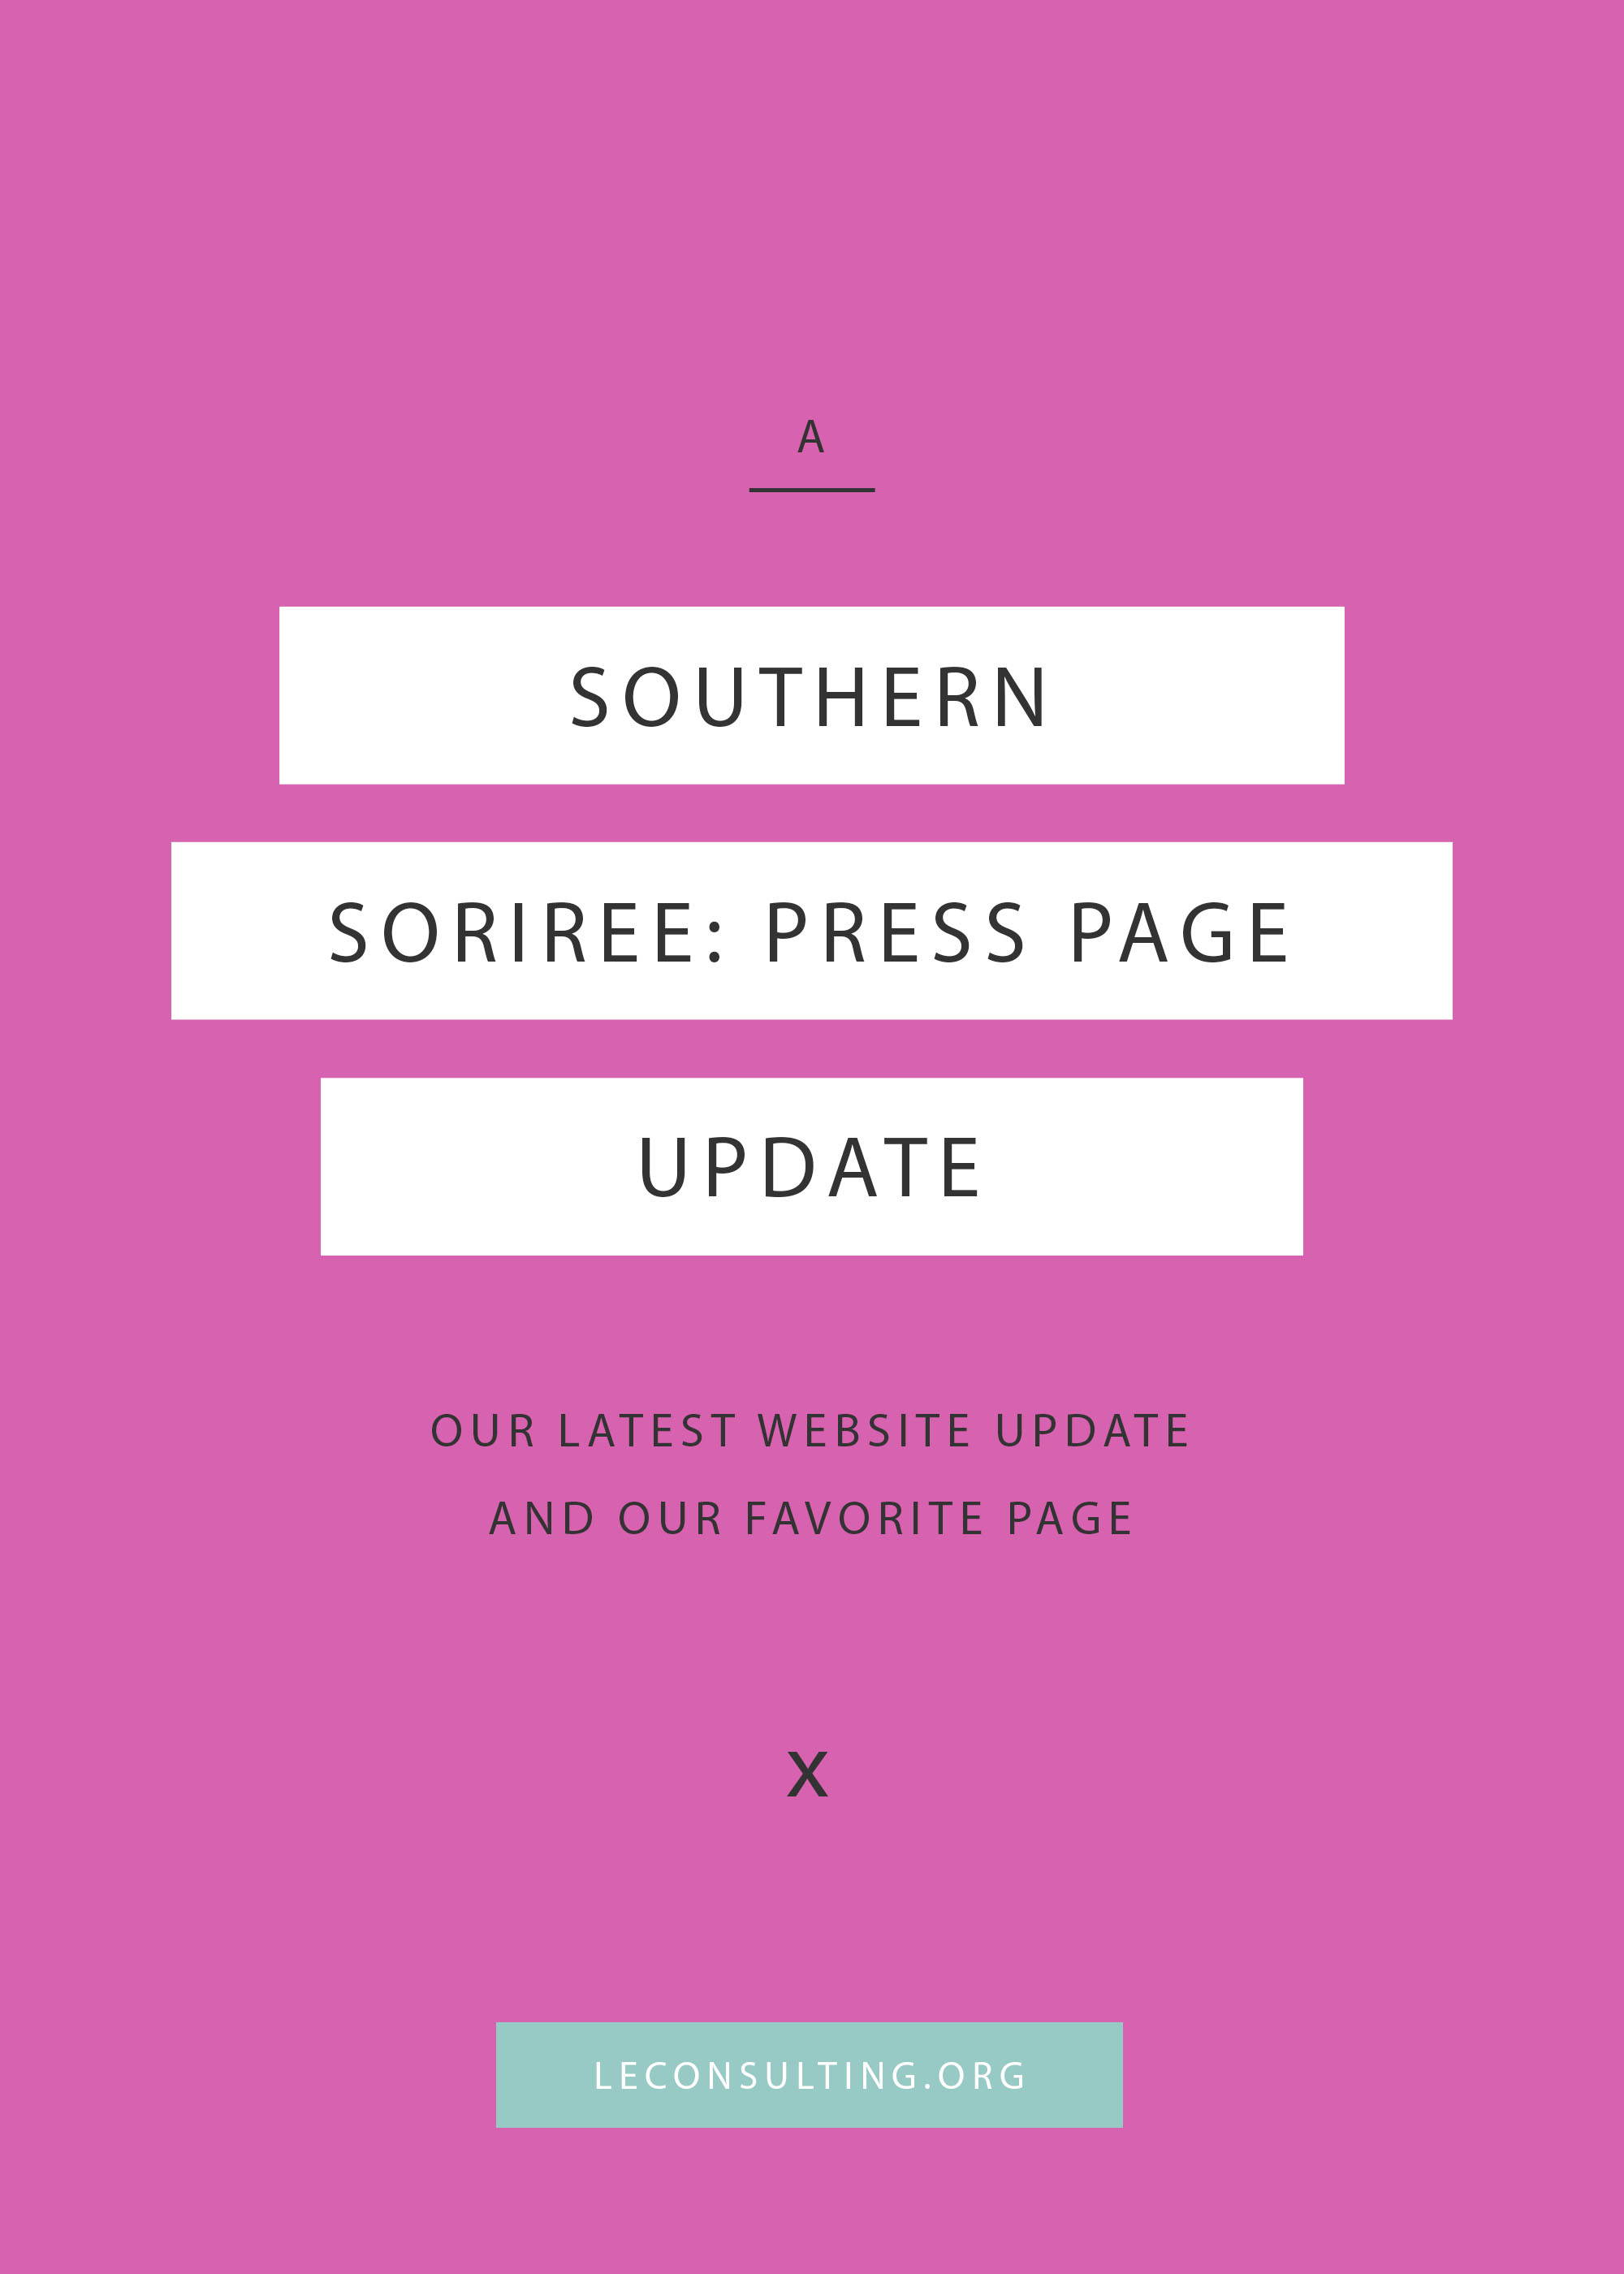 We were honored to make some website updates to A Southern Soiree, a wedding and event planning company. Out of all the work that was put into the site, we have to admit the press page is our favorite. Click through to gather some inspiration for your creative business's next press page. | LE Consulting